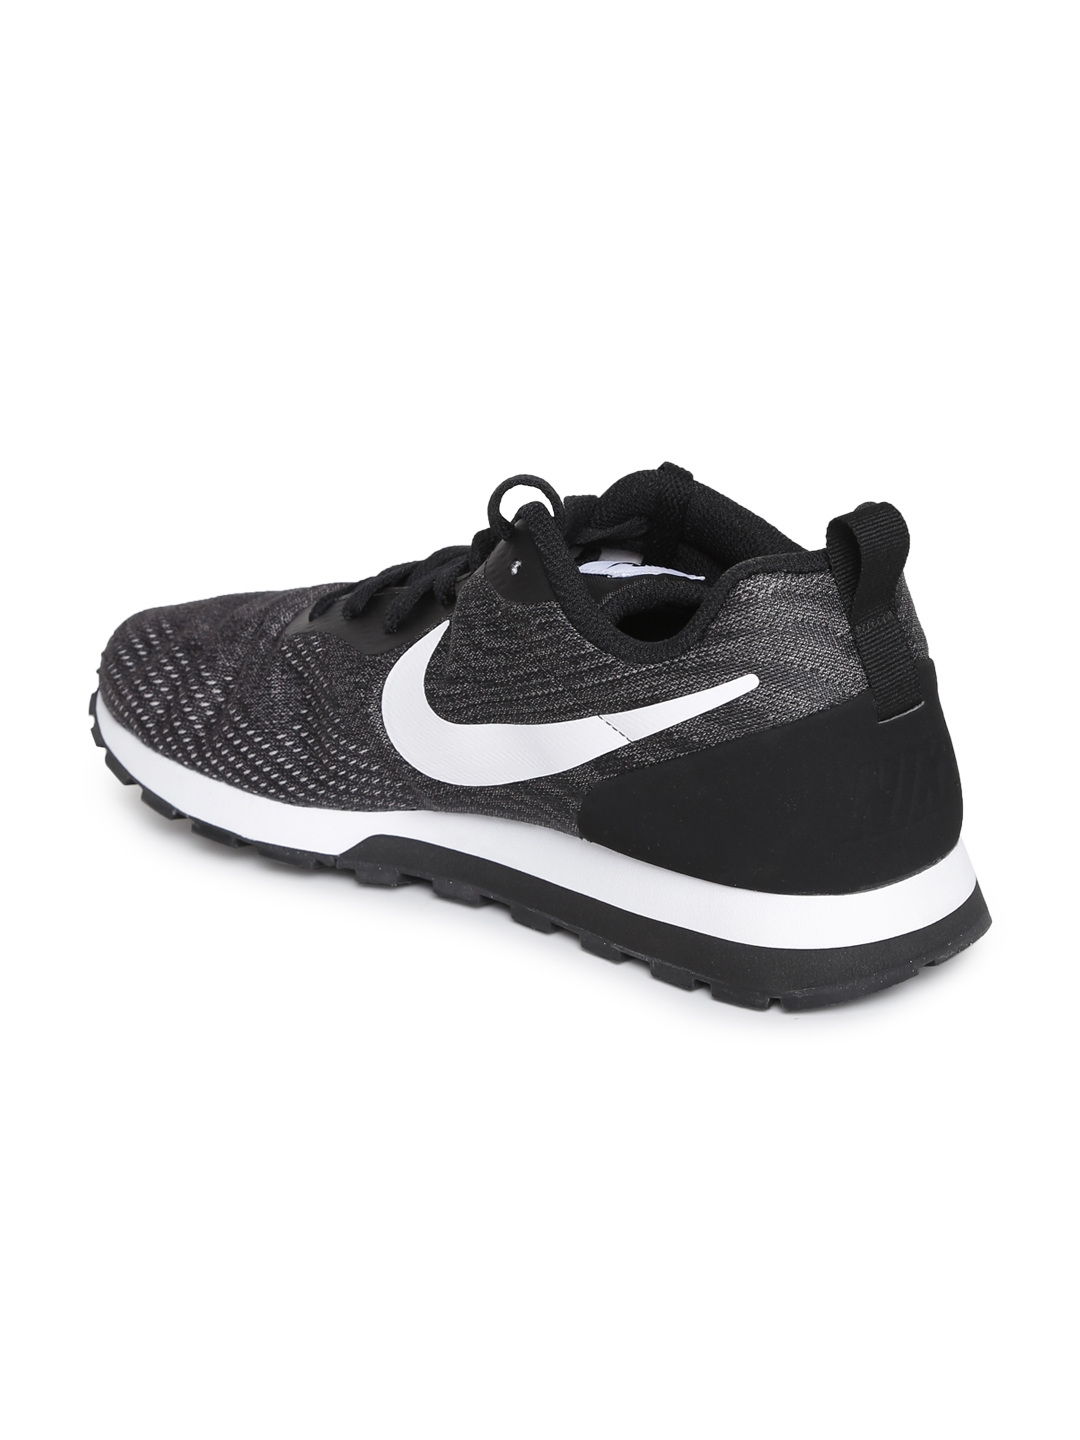 39d9bef37281 11513322354090-Nike-Men-Casual-Shoes-1901513322354013-2.jpg